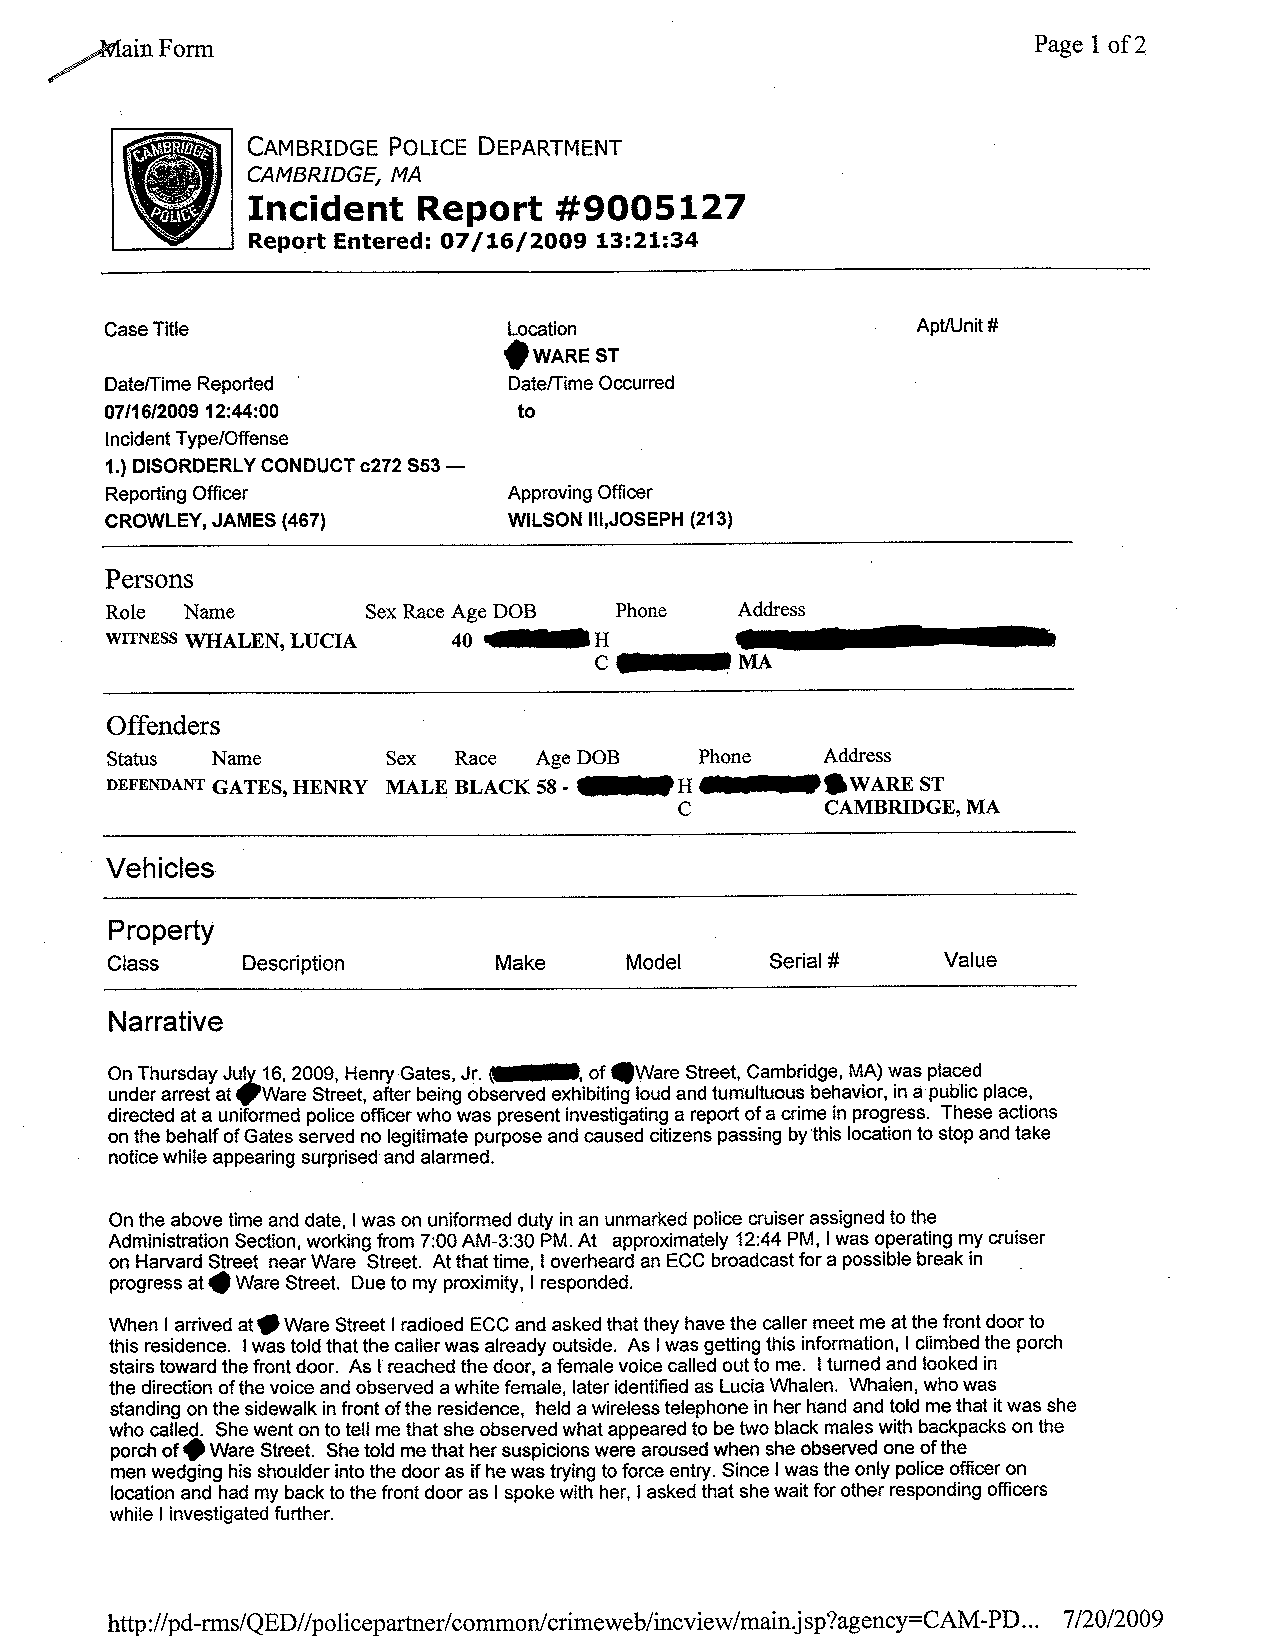 Police Report Template  Invitation Templates  Police Report